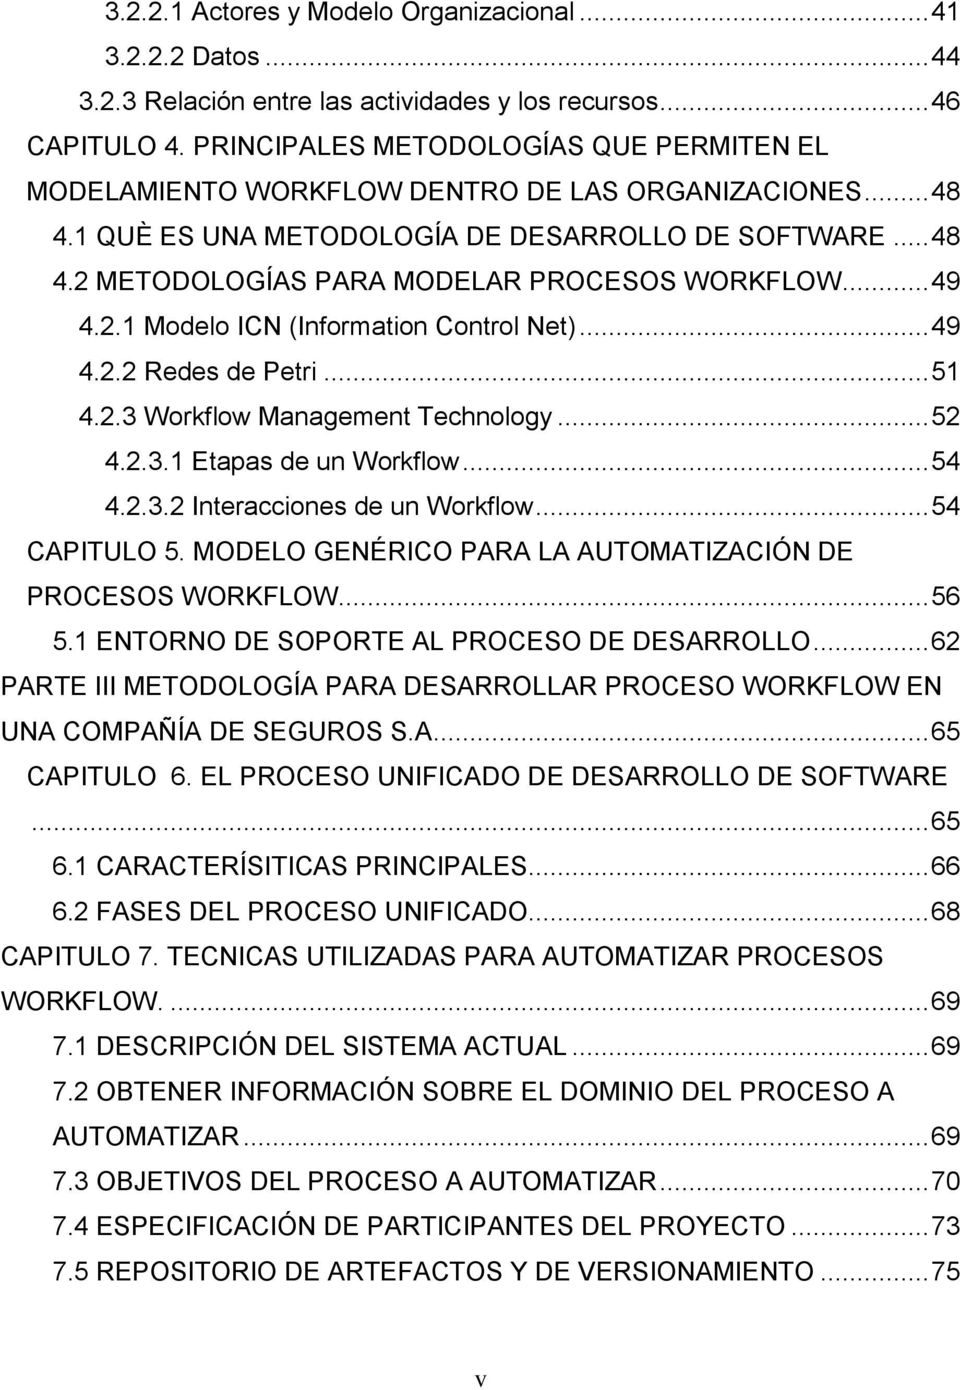 .. 49 4.2.1 Modelo ICN (Information Control Net)... 49 4.2.2 Redes de Petri... 51 4.2.3 Workflow Management Technology... 52 4.2.3.1 Etapas de un Workflow... 54 4.2.3.2 Interacciones de un Workflow.